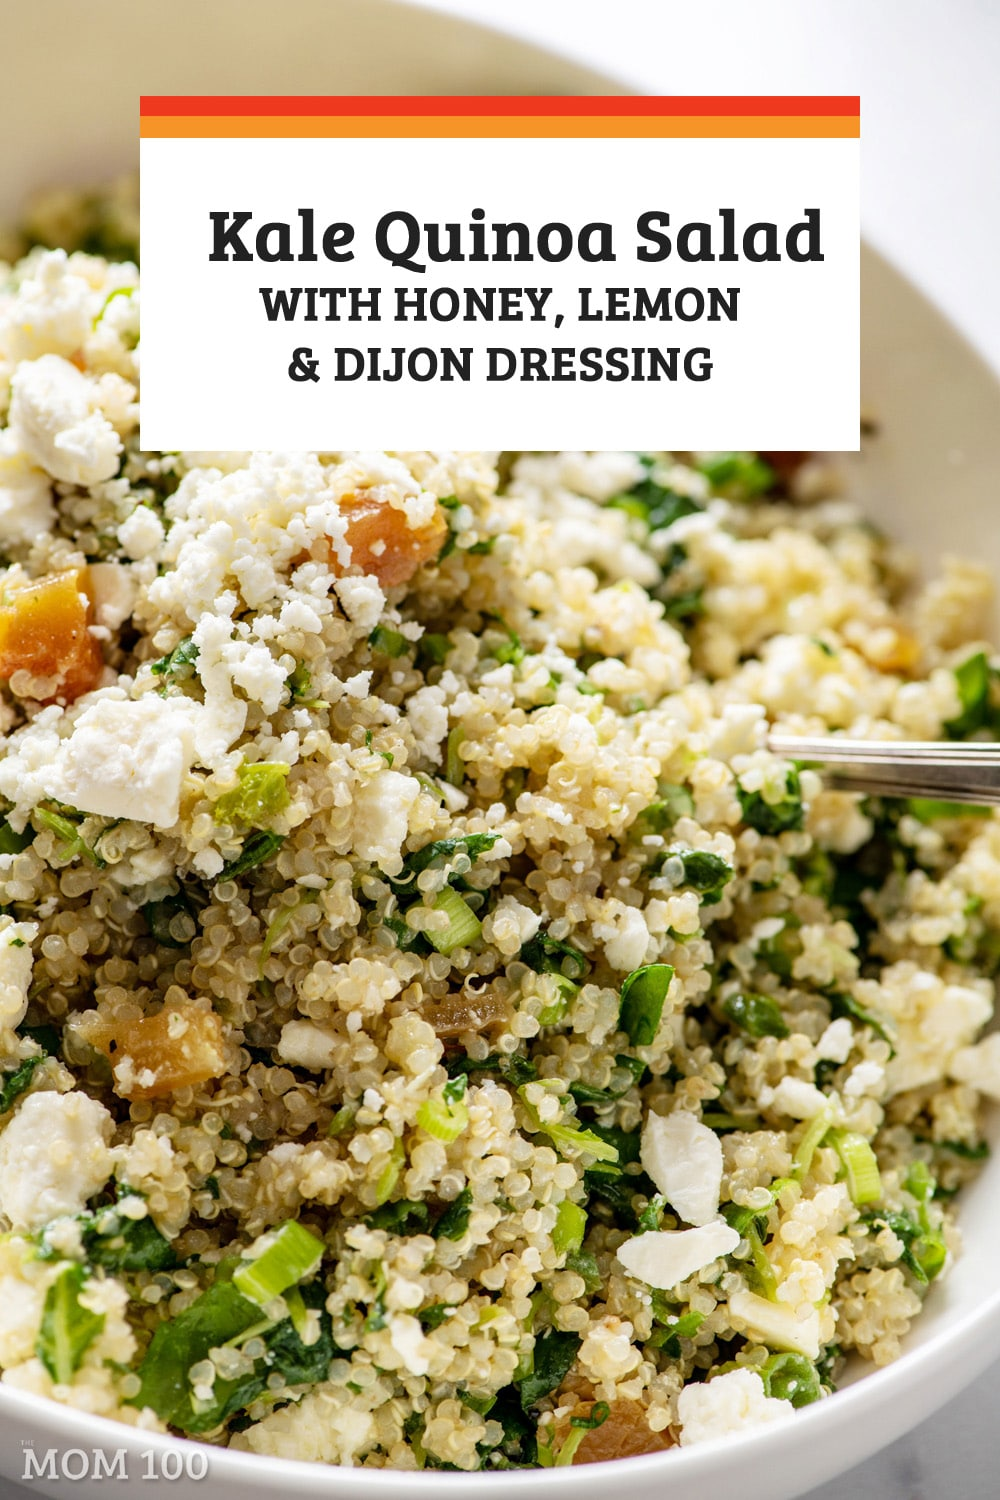 This Kale Quinoa Salad with Honey, Lemon and Dijon Dressing is packed with flavor and texture and color; a grain salad to play with for a long time.